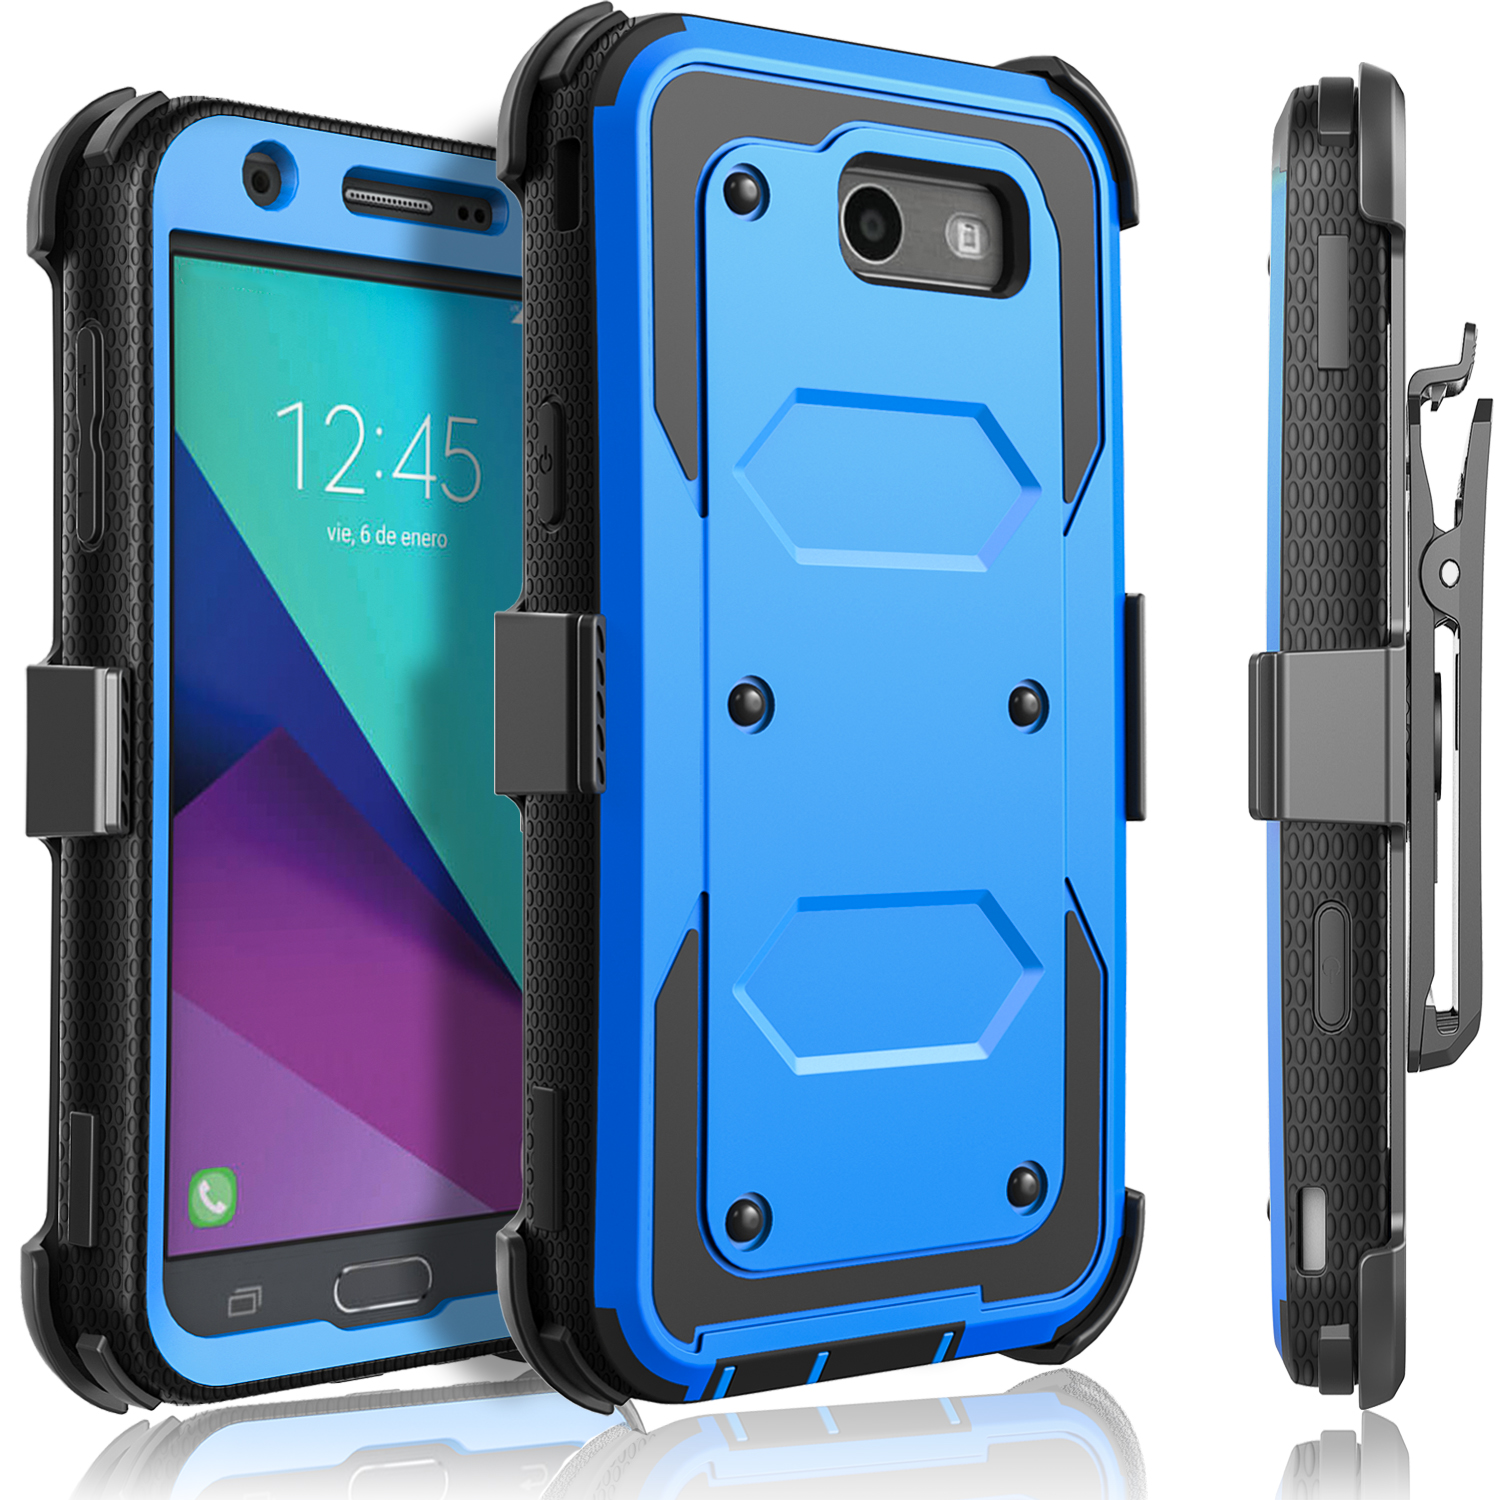 Galaxy J3 Emerge Case, Galaxy J3 Prime Case, [SUPER GUARD] Dual Layer Protection With [Built-in Screen Protector] Holster Locking Belt Clip+Circle(TM) Stylus Touch Screen Pen (Black)